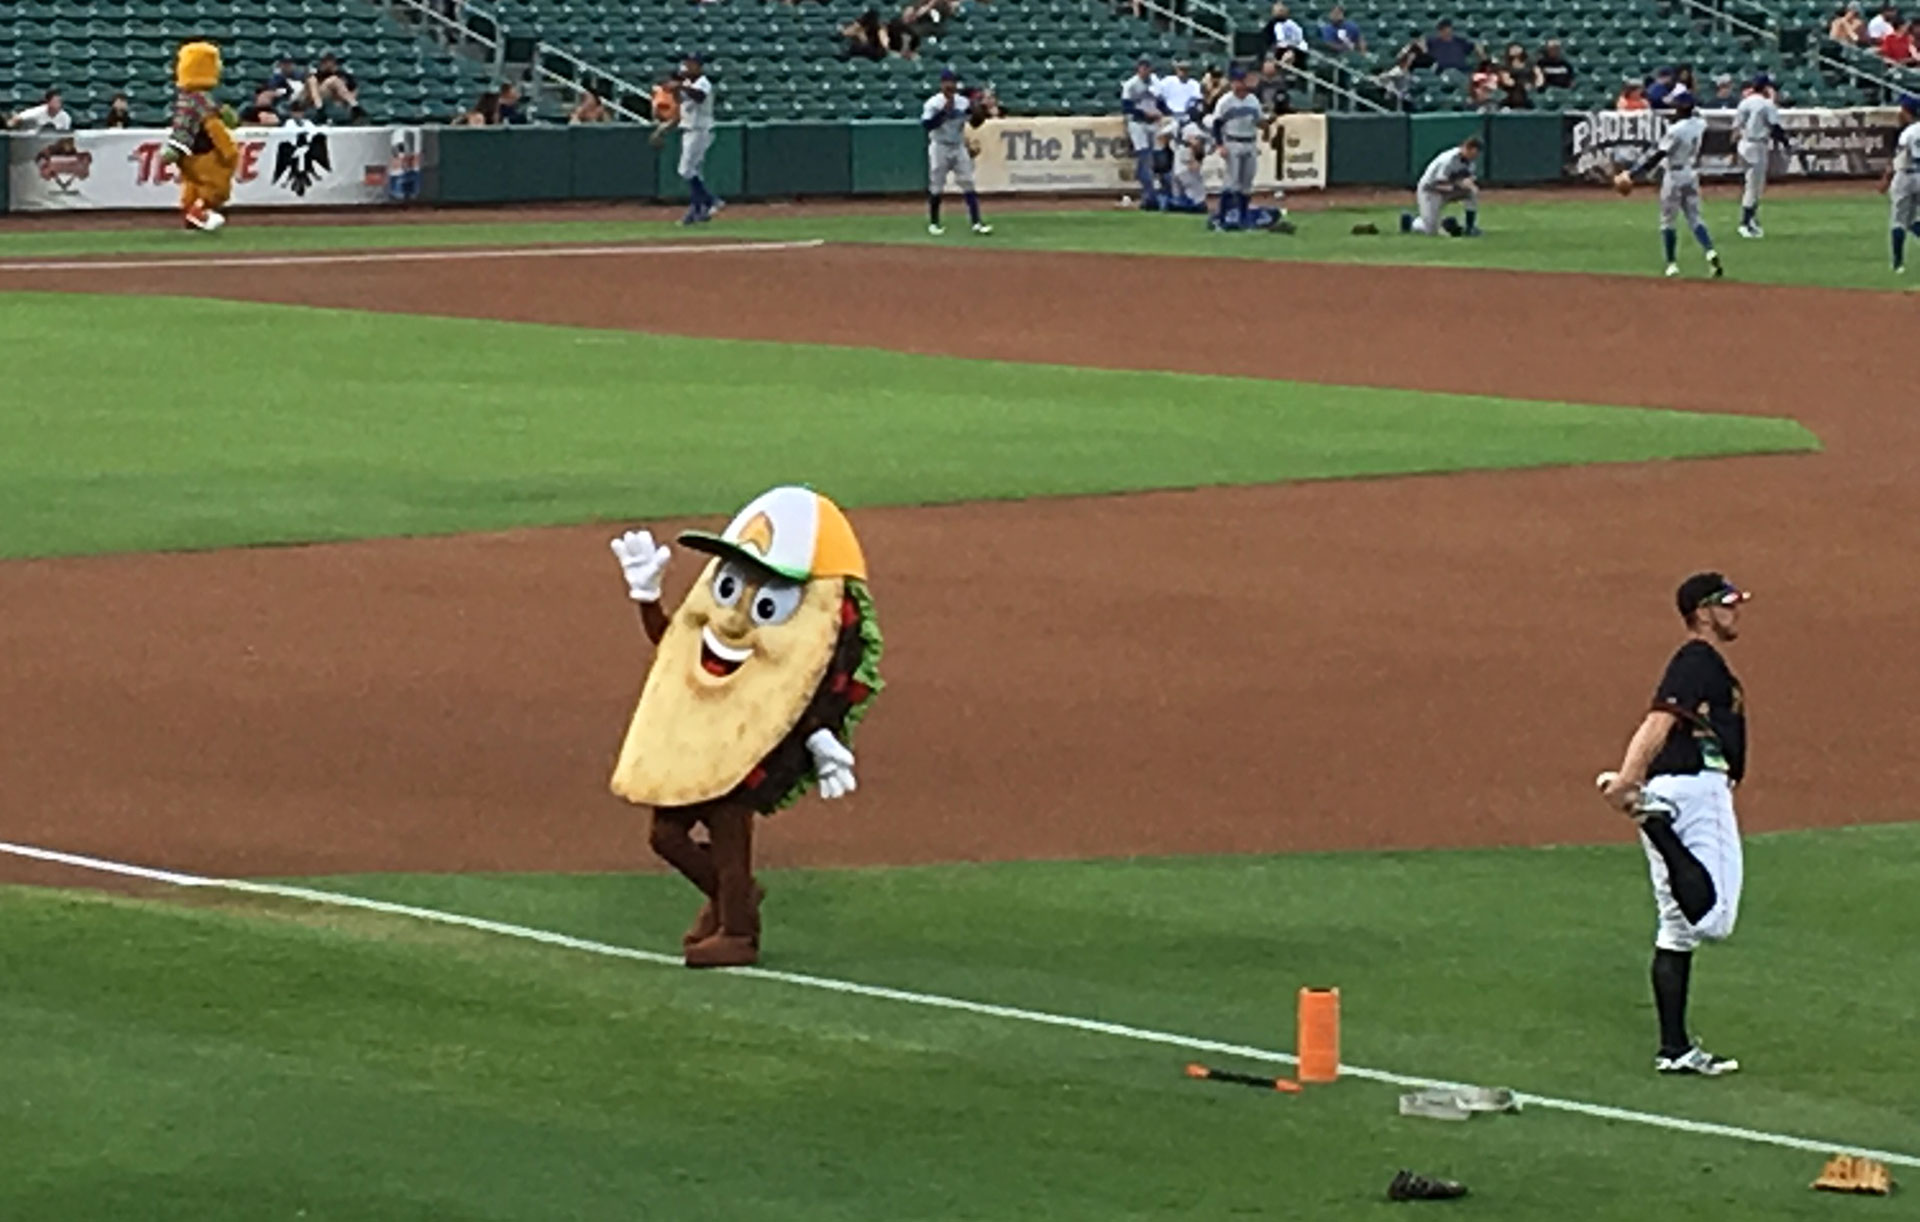 Twice a year, the Fresno Grizzlies become the Fresno Tacos, replete with mascot Cilantro Gomez.